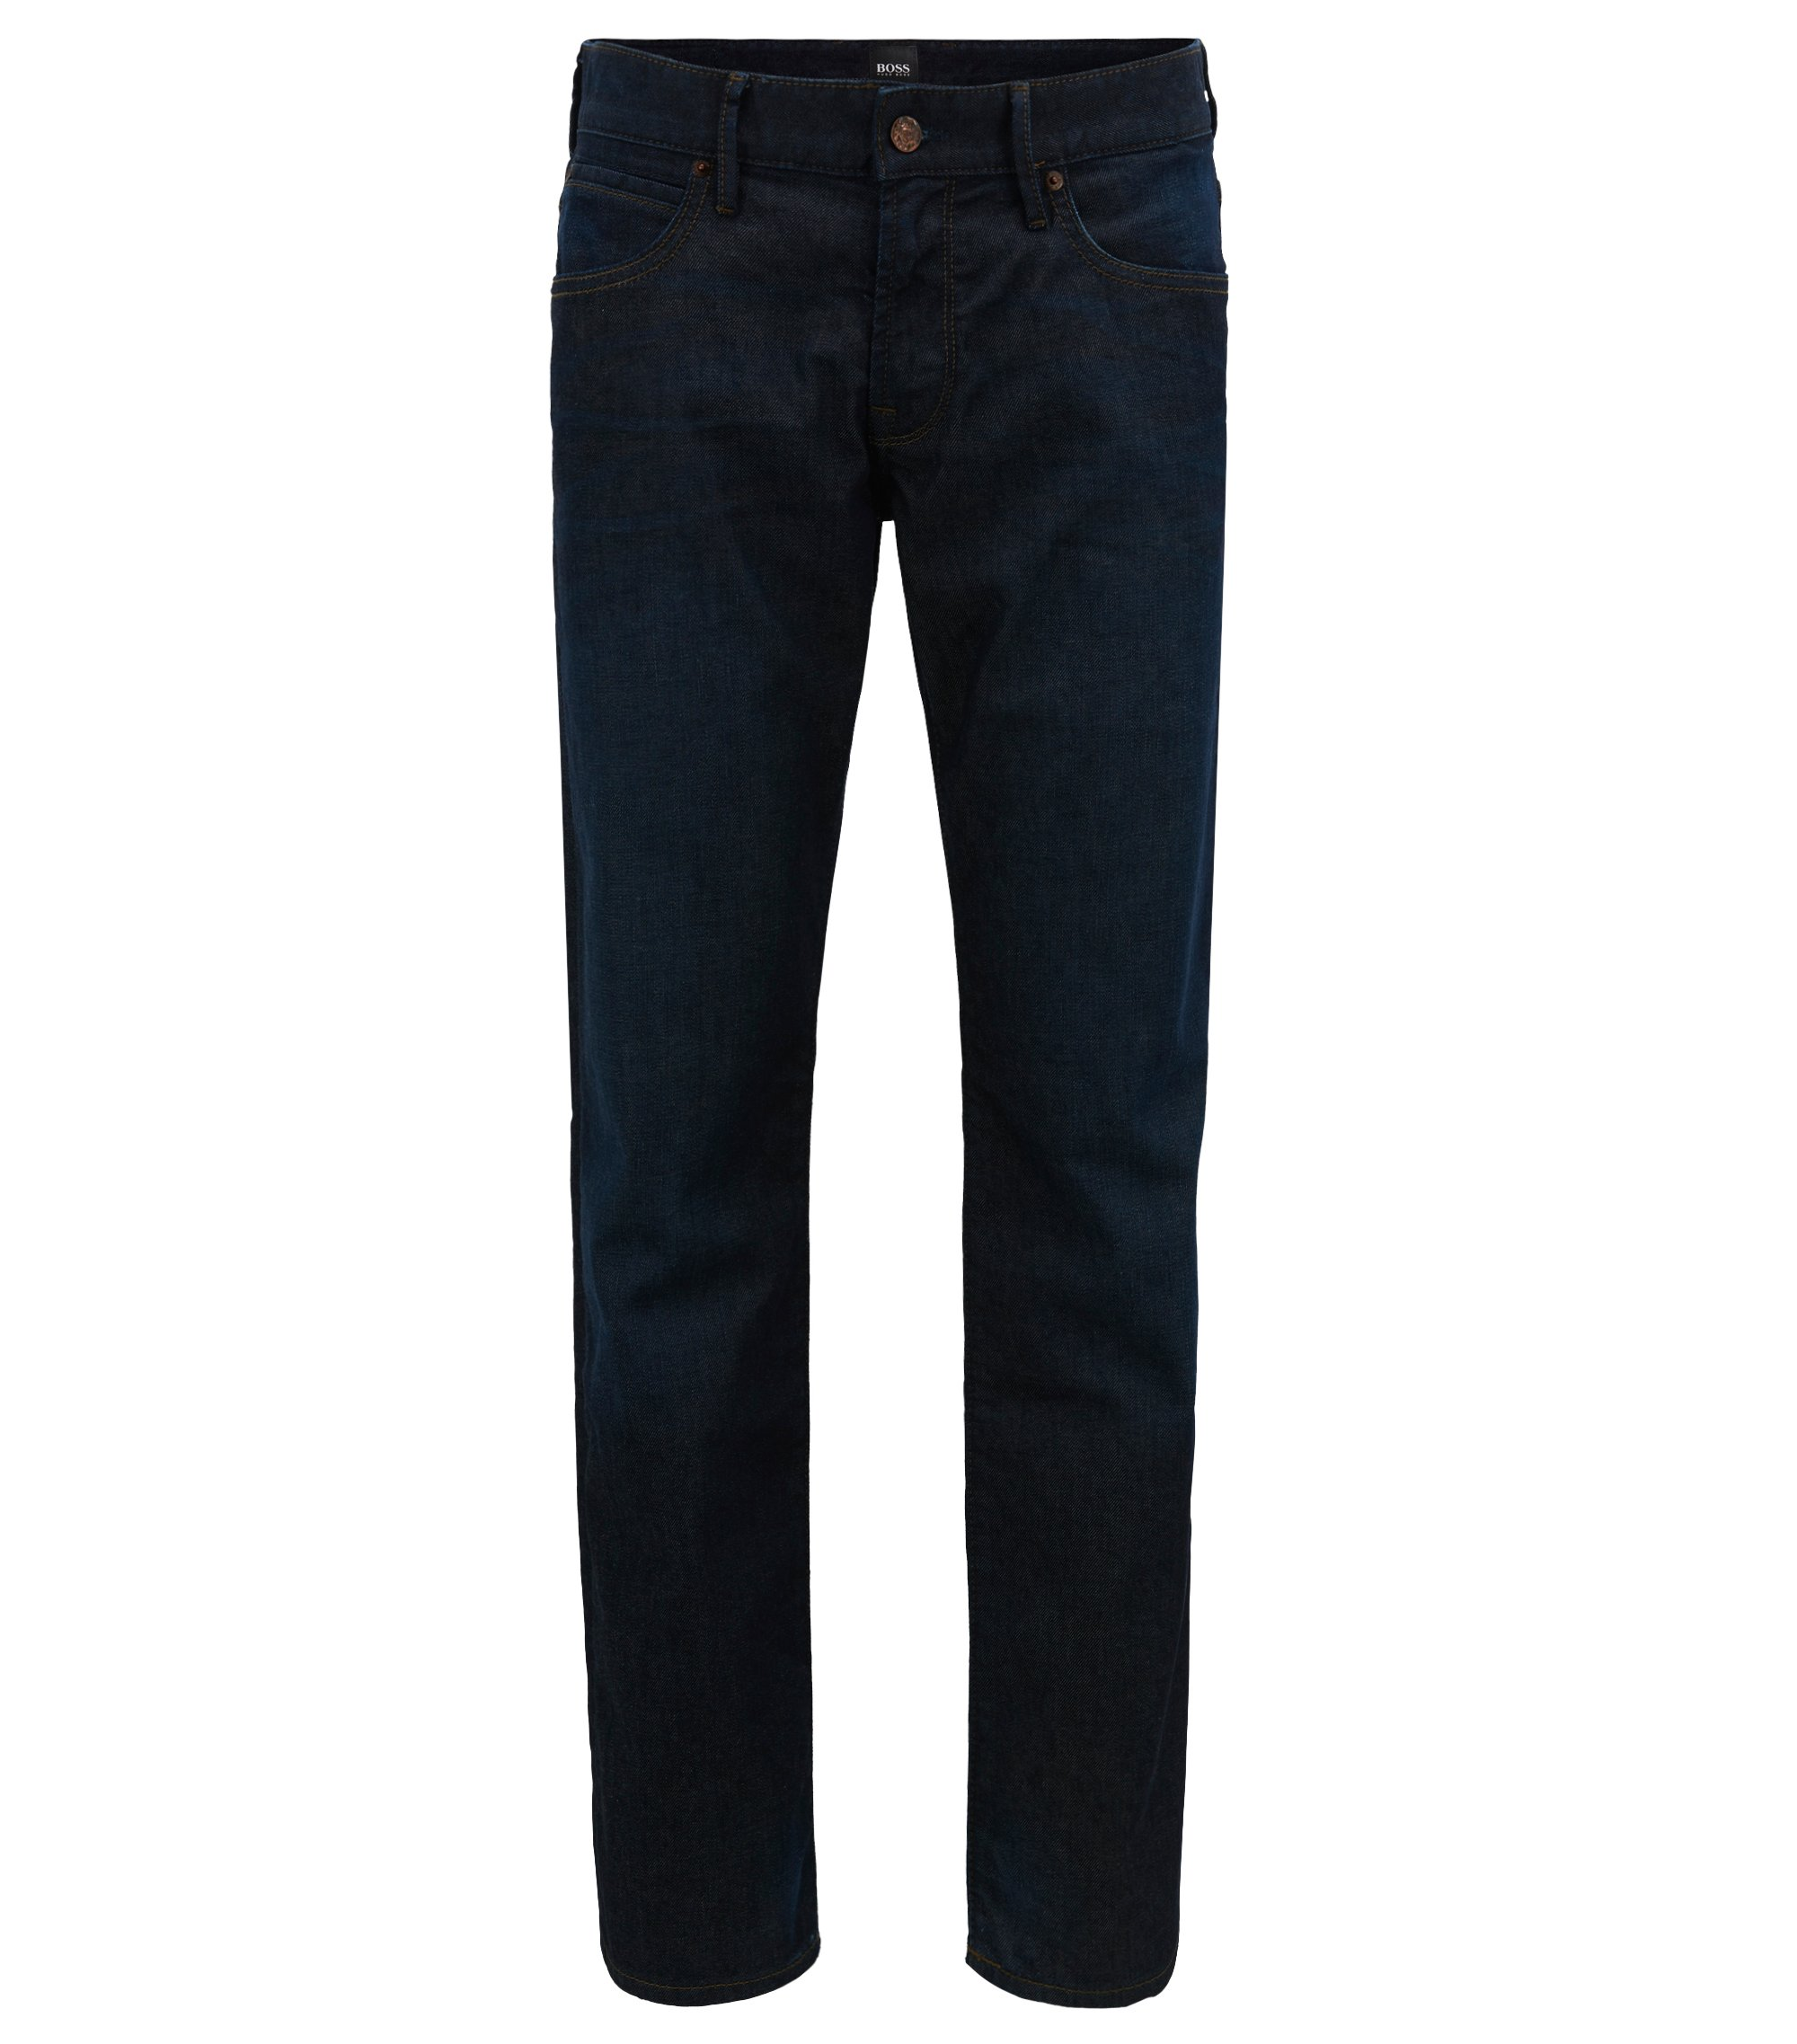 Jeans Regular Fit en denim indigo stretch, Bleu foncé